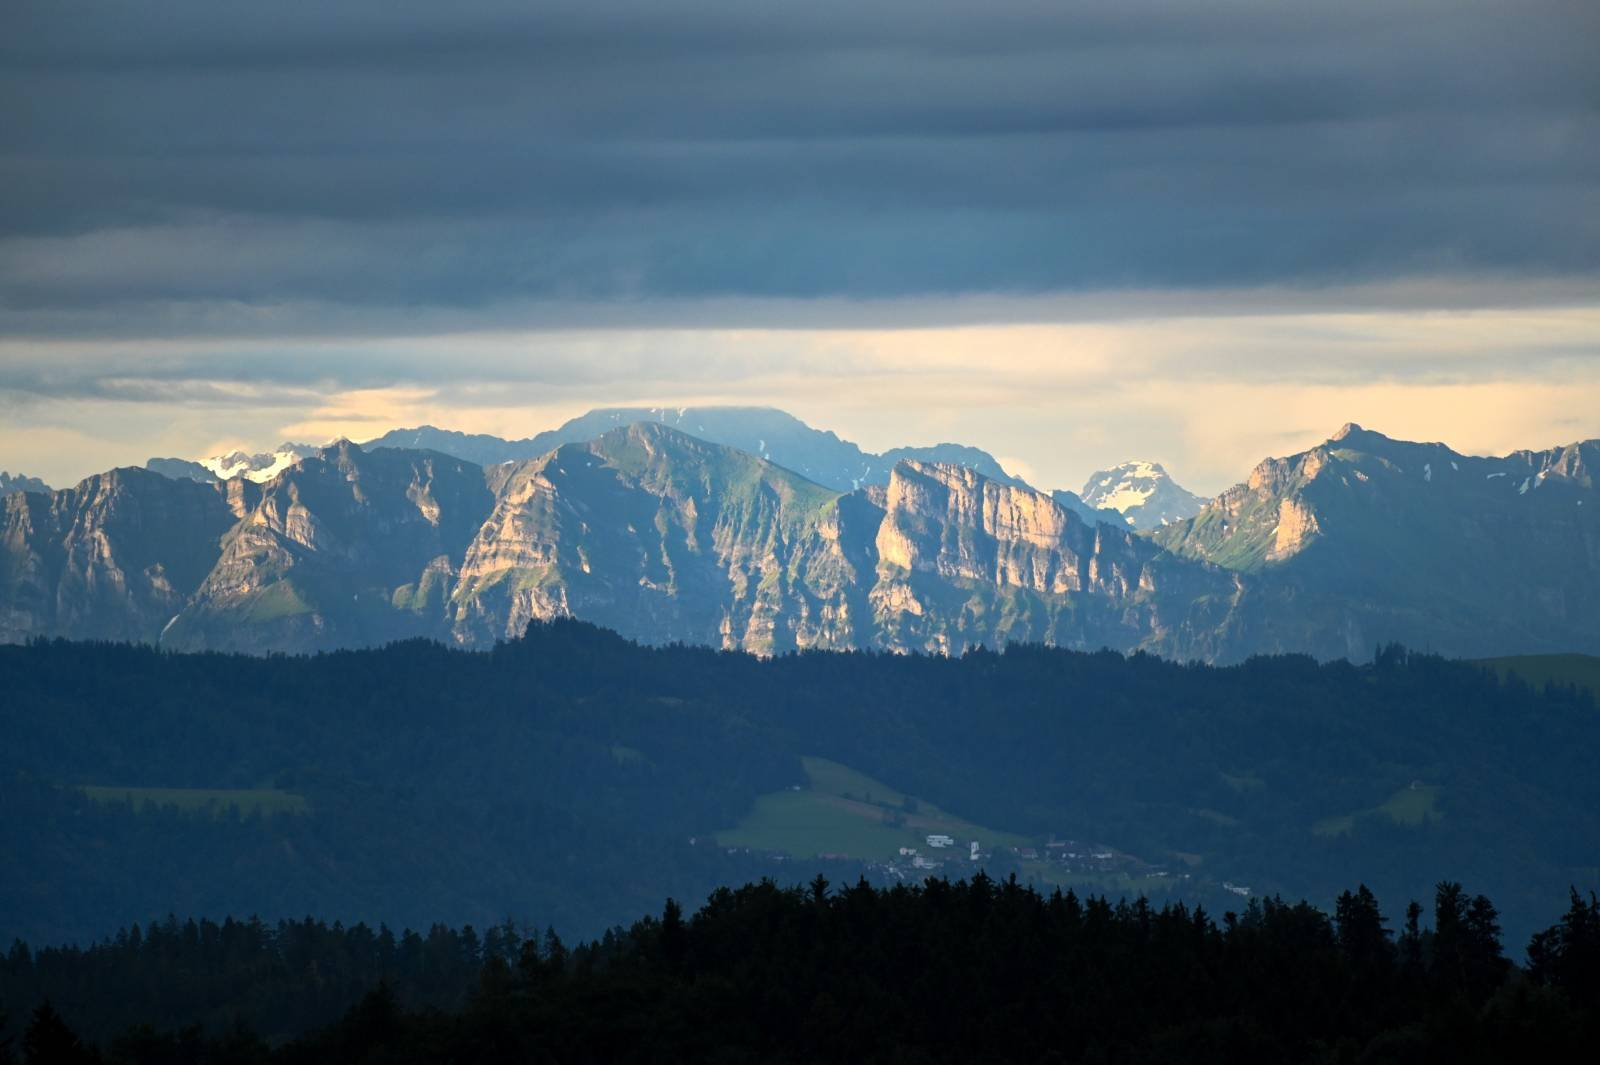 Rain in the Lake Constance region - Clear view of the Swiss Alps